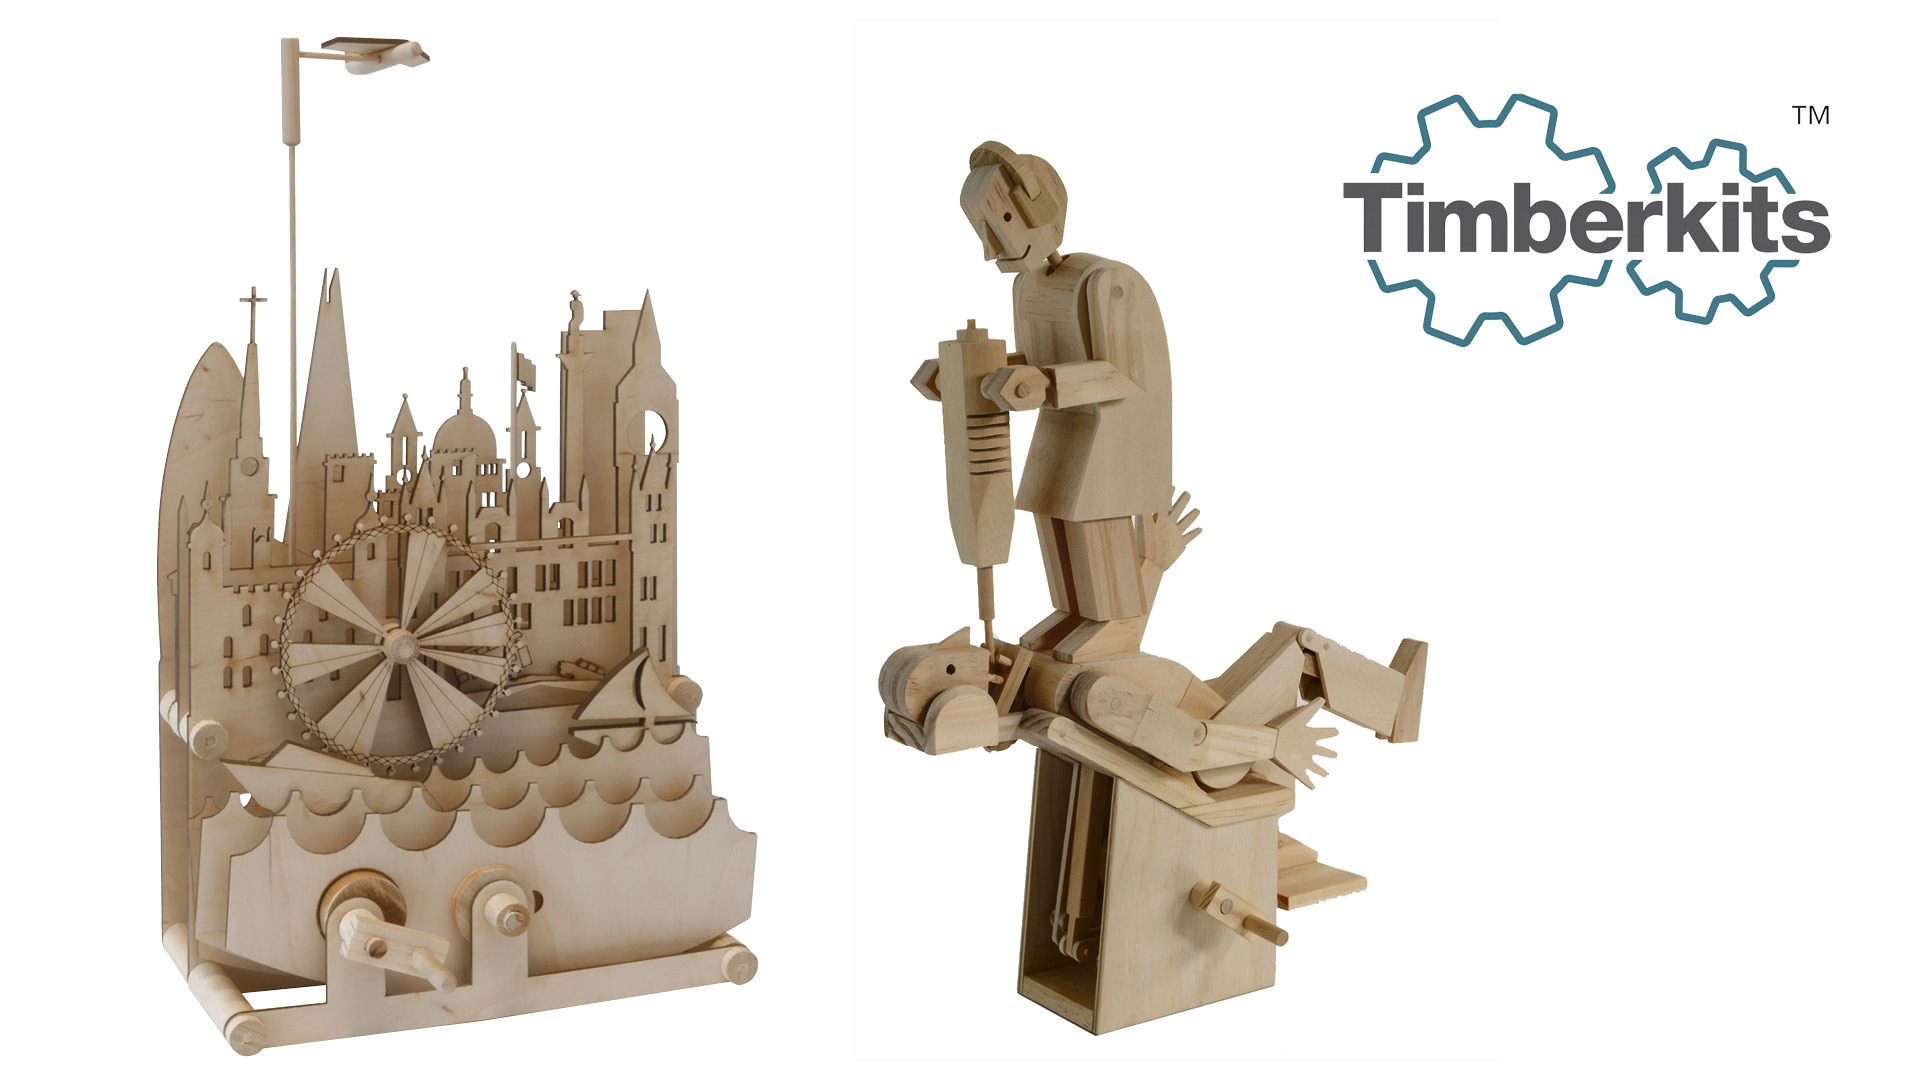 Traditional natural wooden Timberkit models